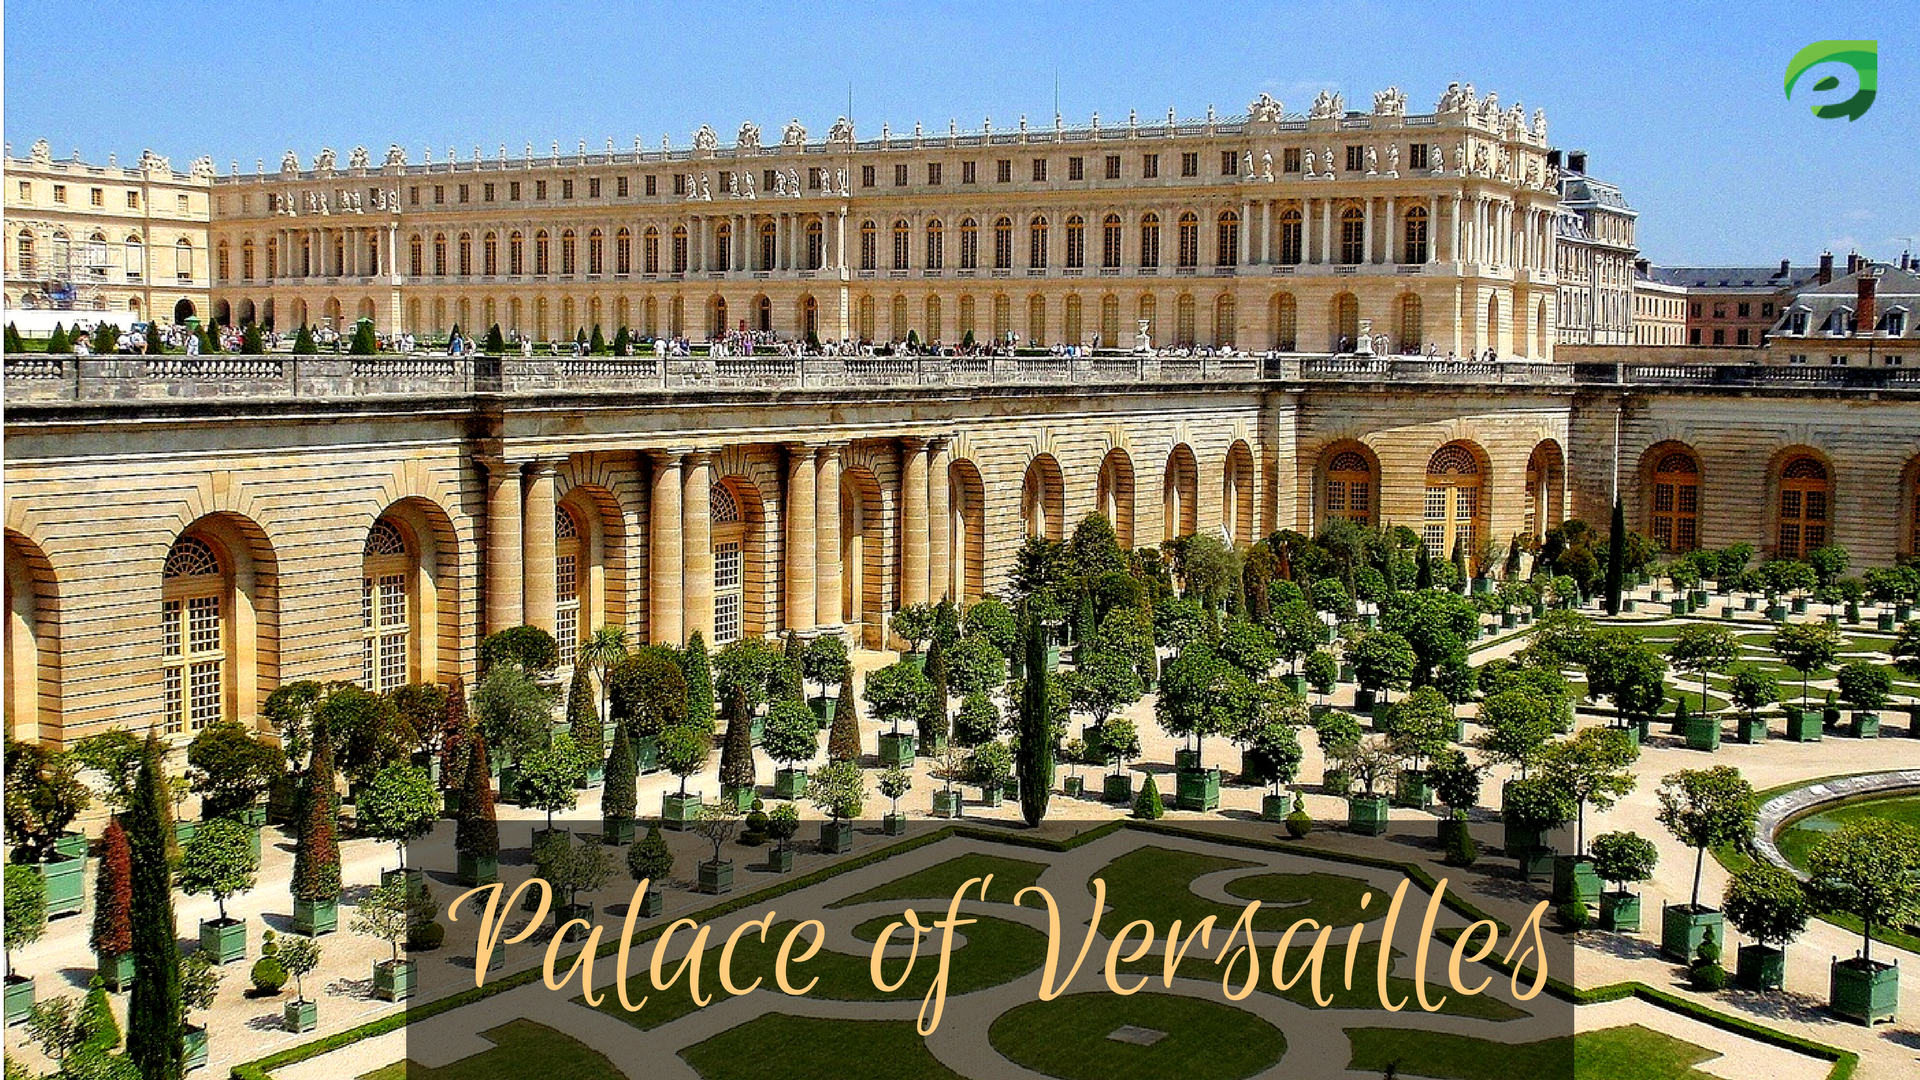 Palace of Versailles - 35 Amazing places to visit in Paris